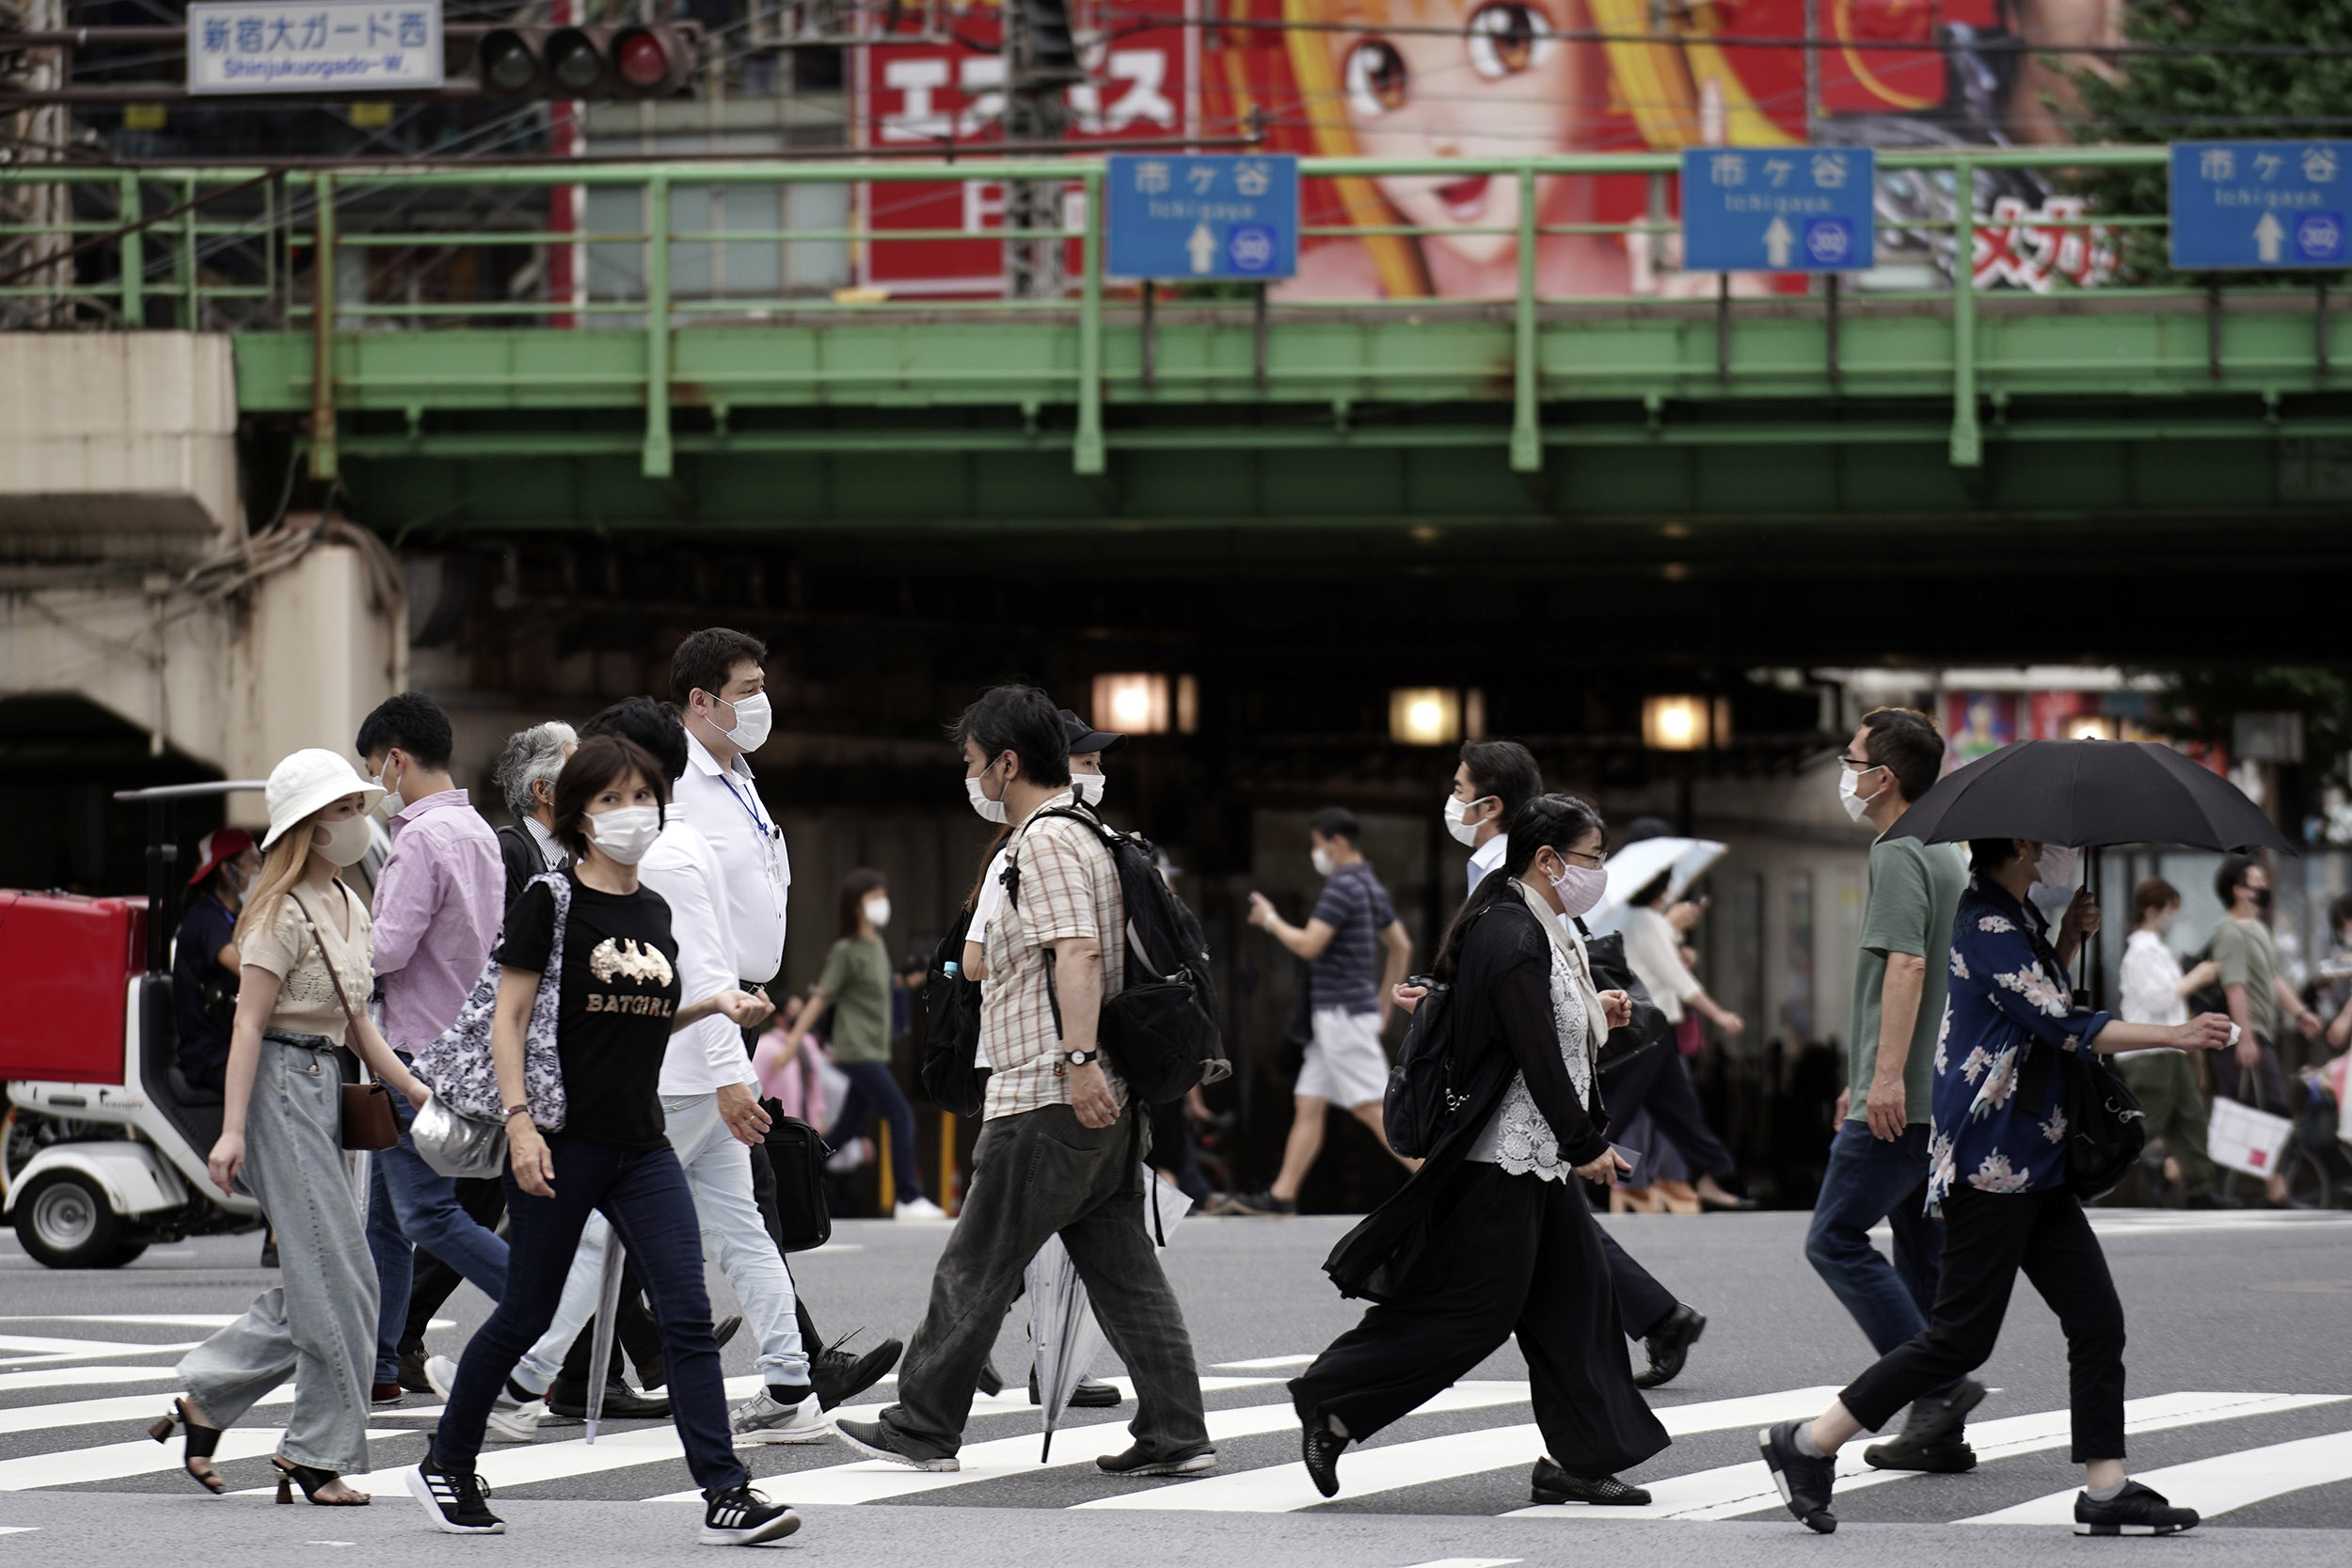 Pedestrians wear protective face masks to help curb the spread of the coronavirus while walking on Friday, July 10, in Tokyo.